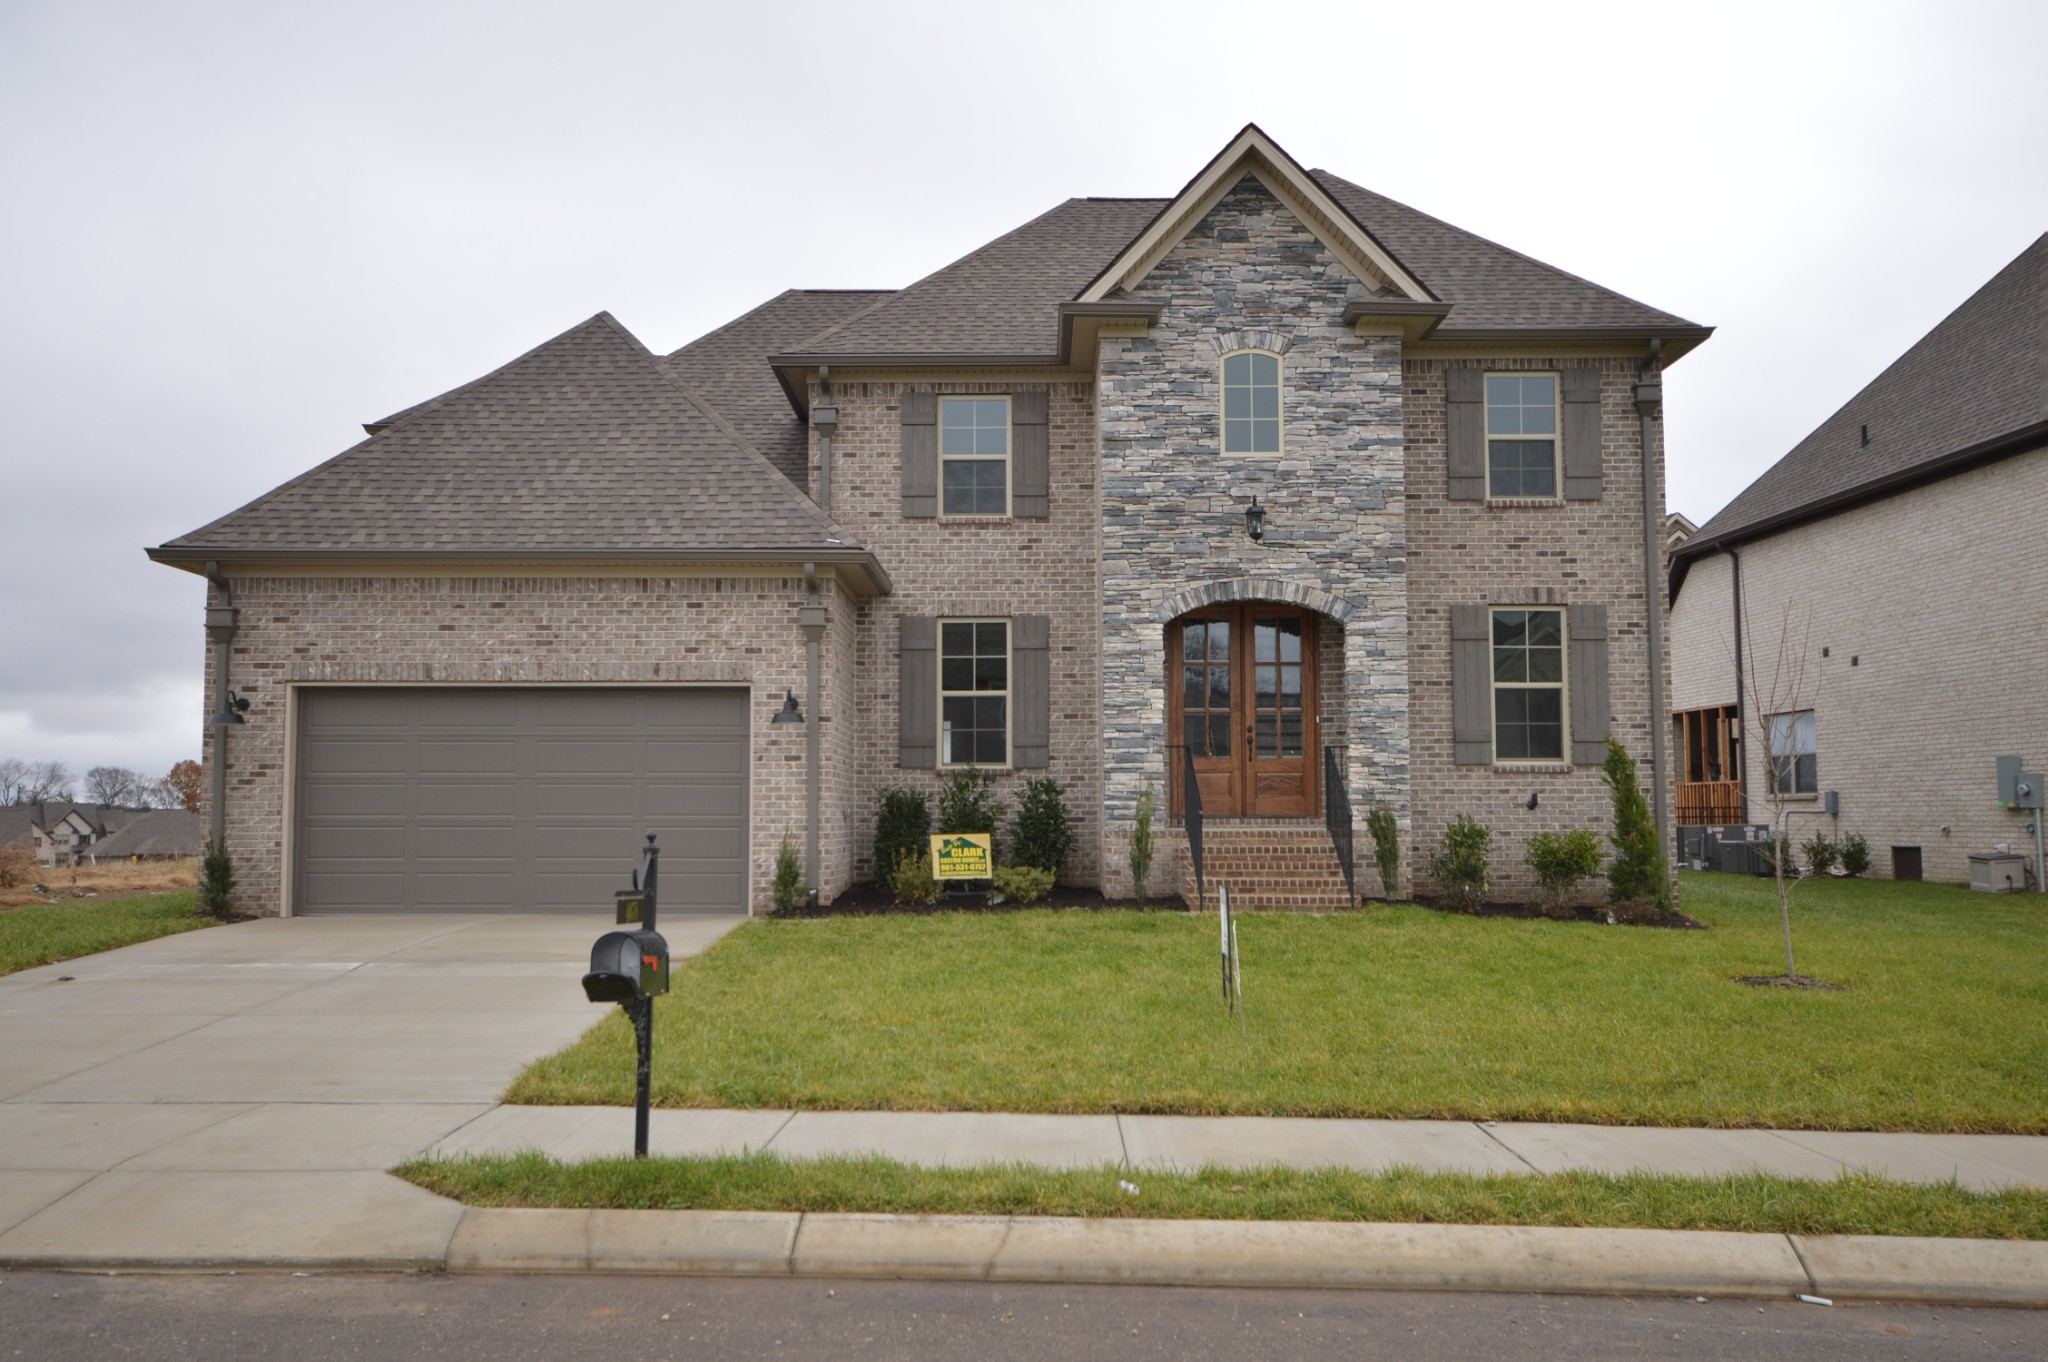 4078 Miles Johnson Pkwy (394), Spring Hill, TN 37174 - Spring Hill, TN real estate listing